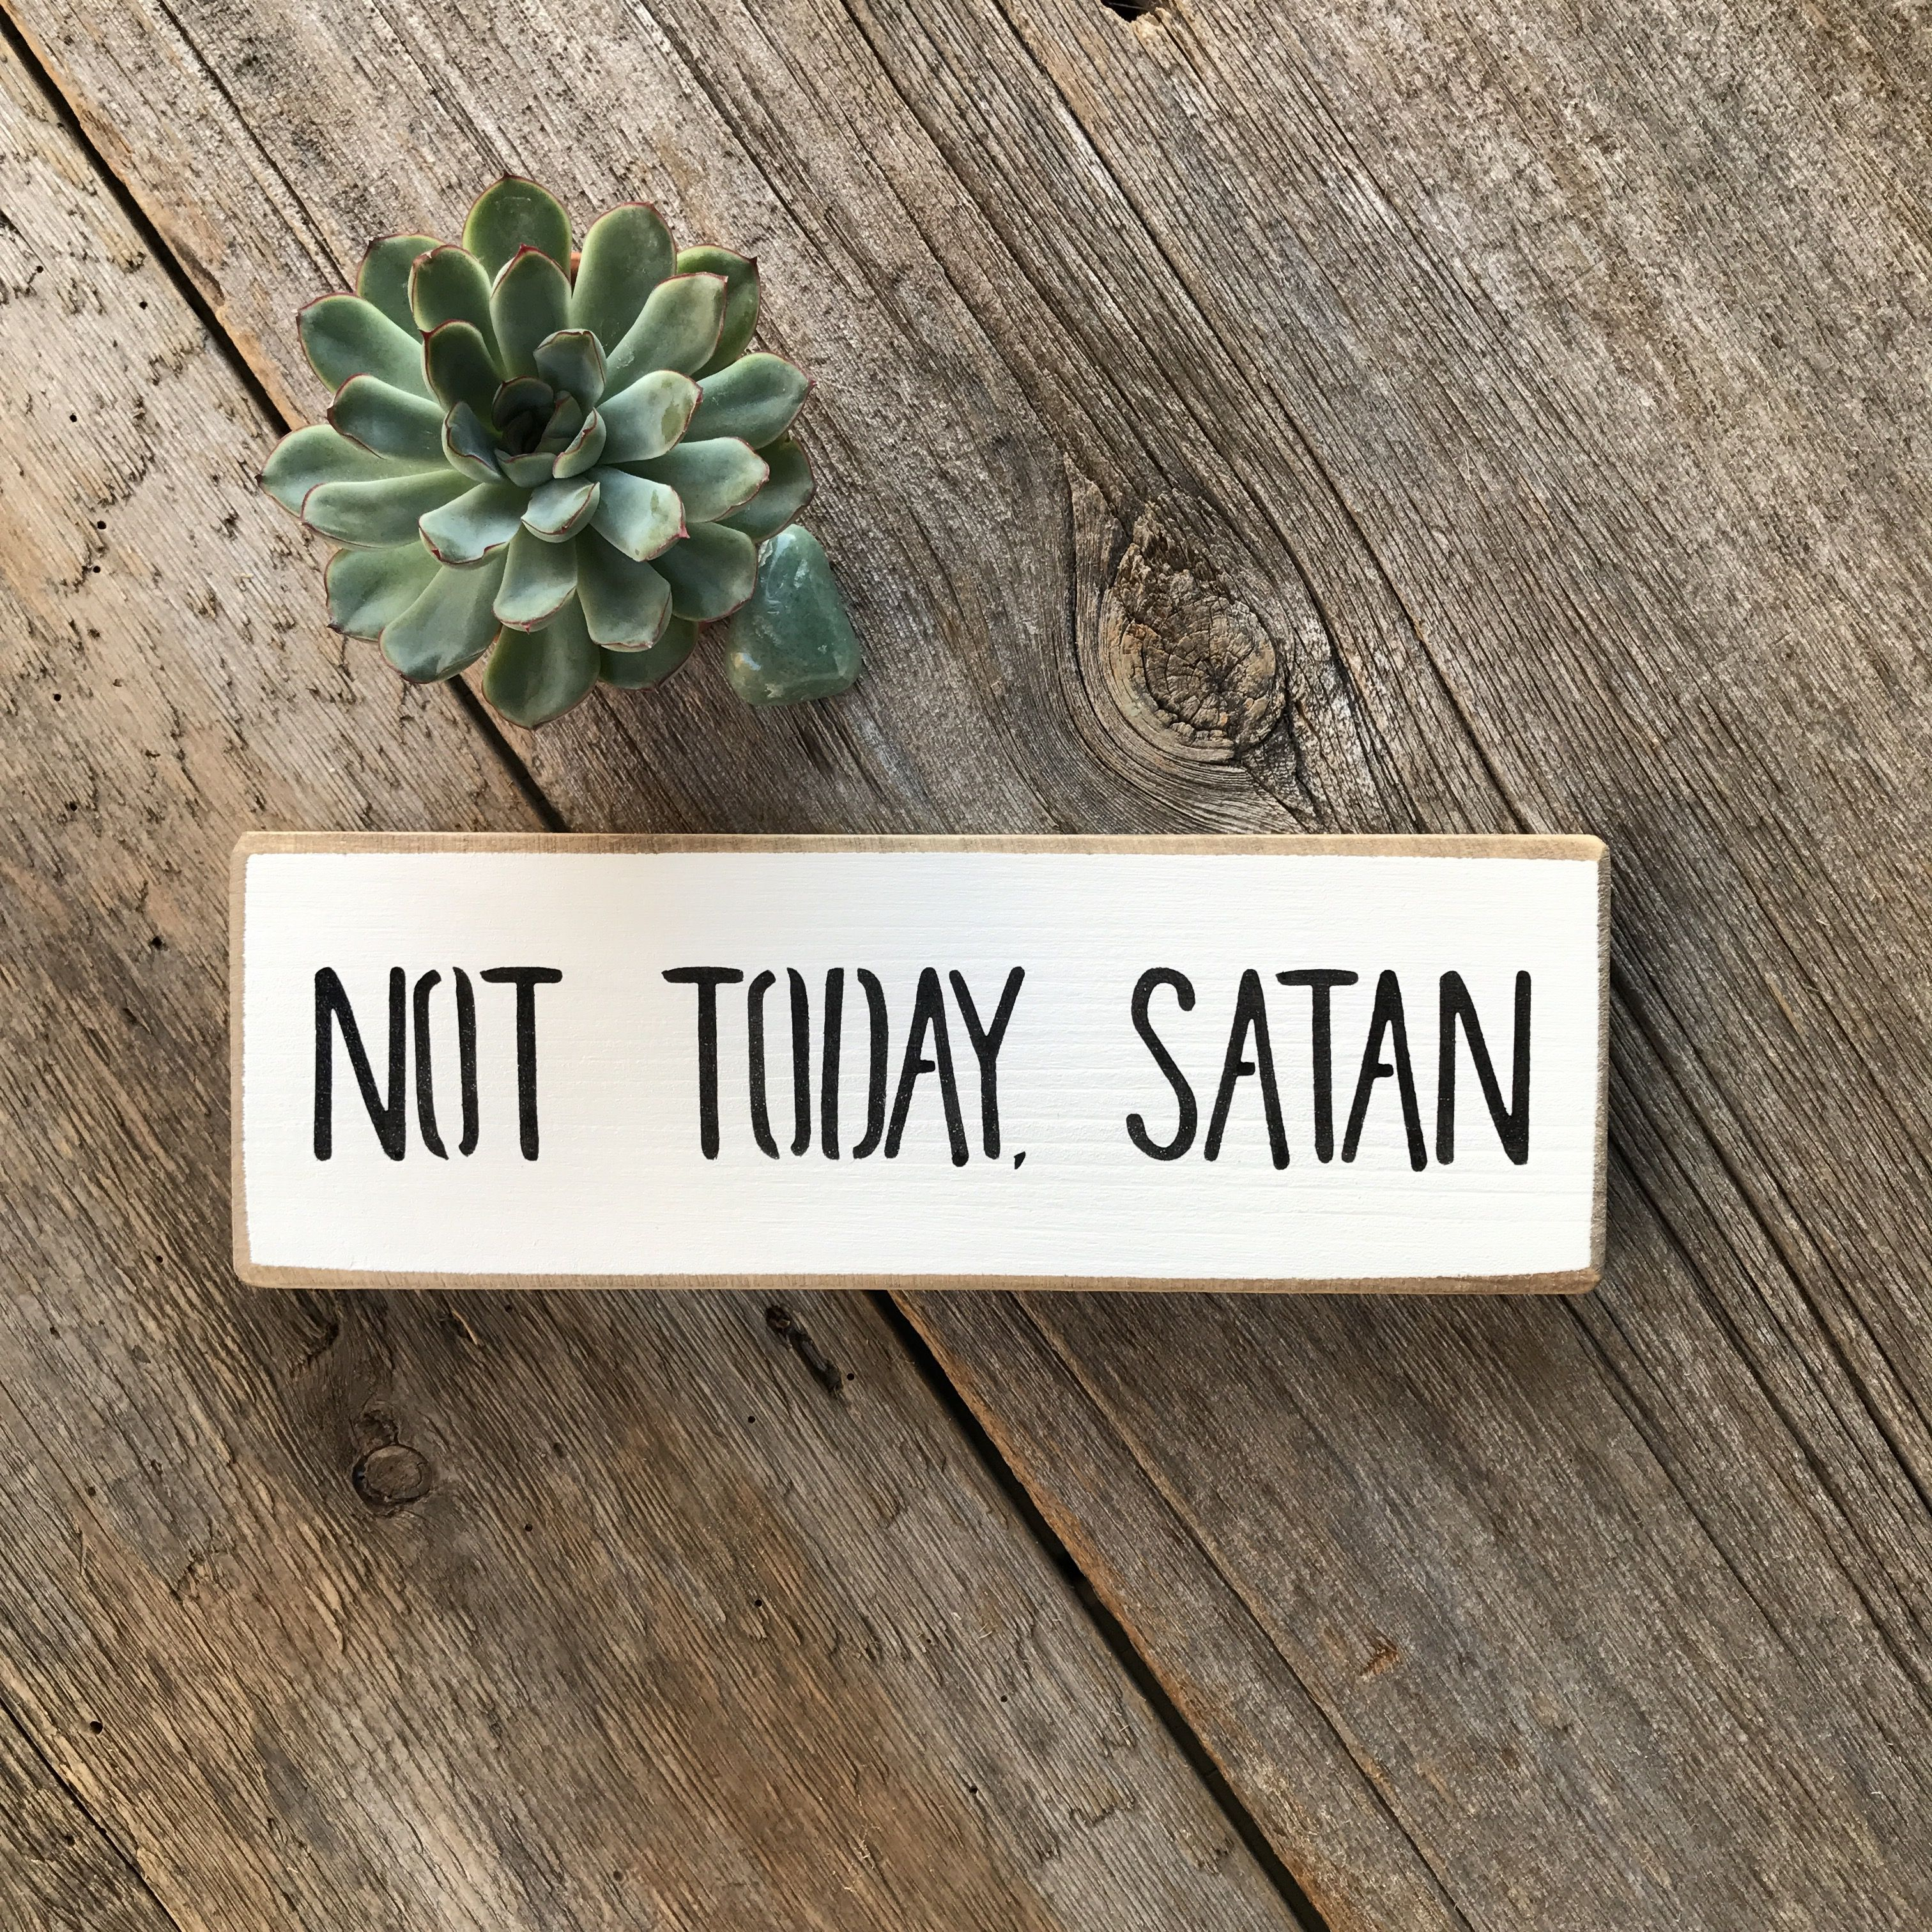 Funny Quotes Funny Sarcastic Quotes And Sayings Hilarious Life Quotes Wood Sign Shelf Decor Childrens Bedroom Decor Office Quotes Funny Handmade Signs